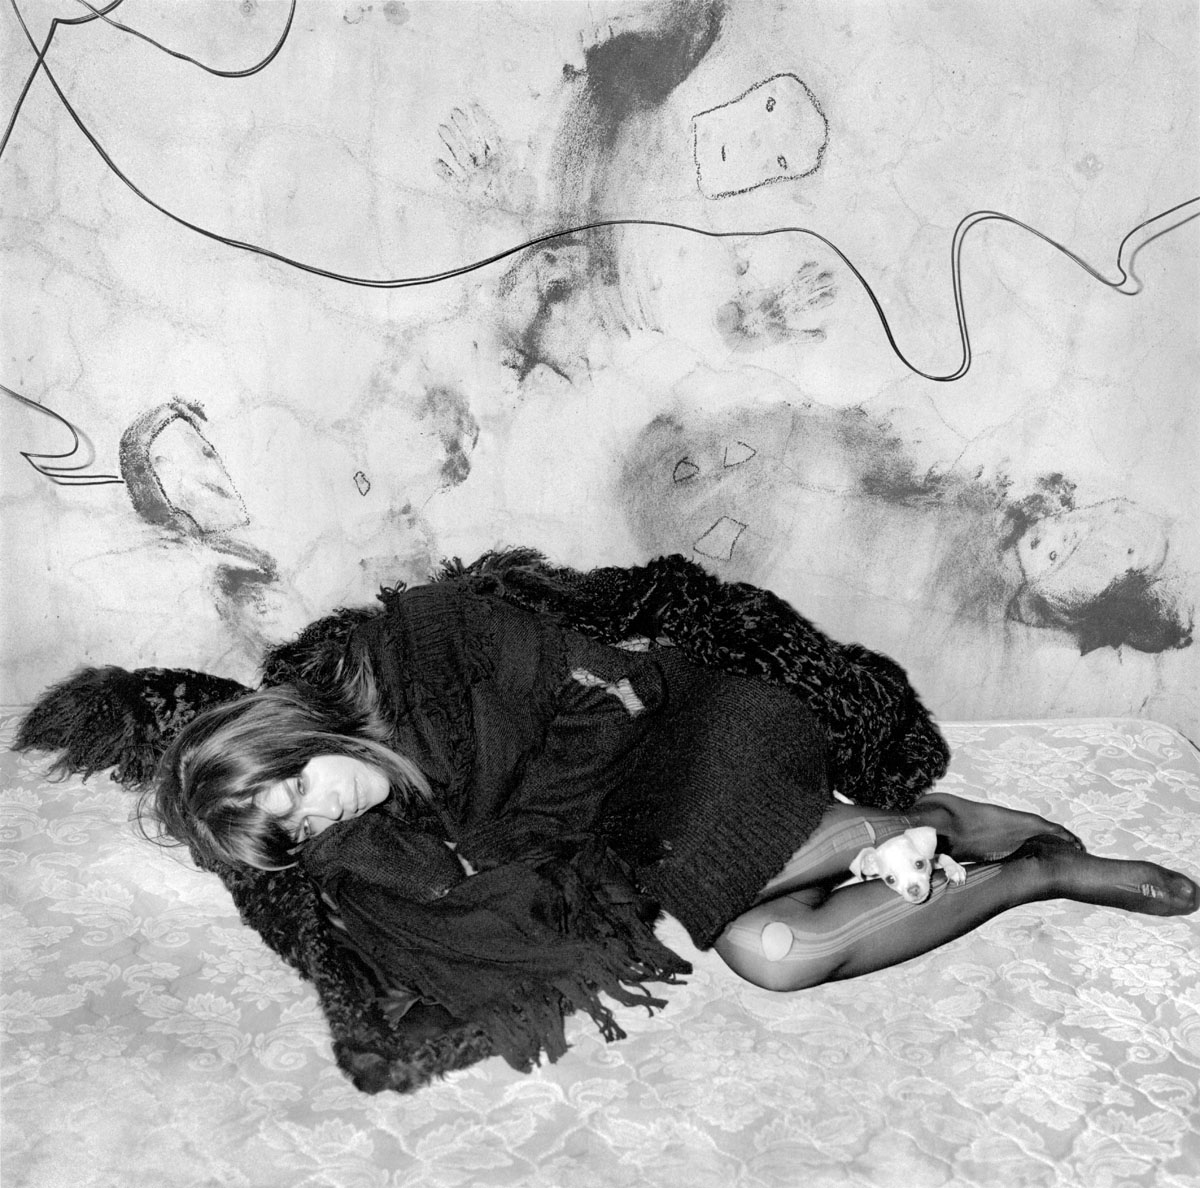 Roger Ballen: Selma Blair and Scruffy, 2005, archival pigment print, AP 3/4, signed, titled, dated, and numbered verso, with certificate of authenticity, image size: 14.125